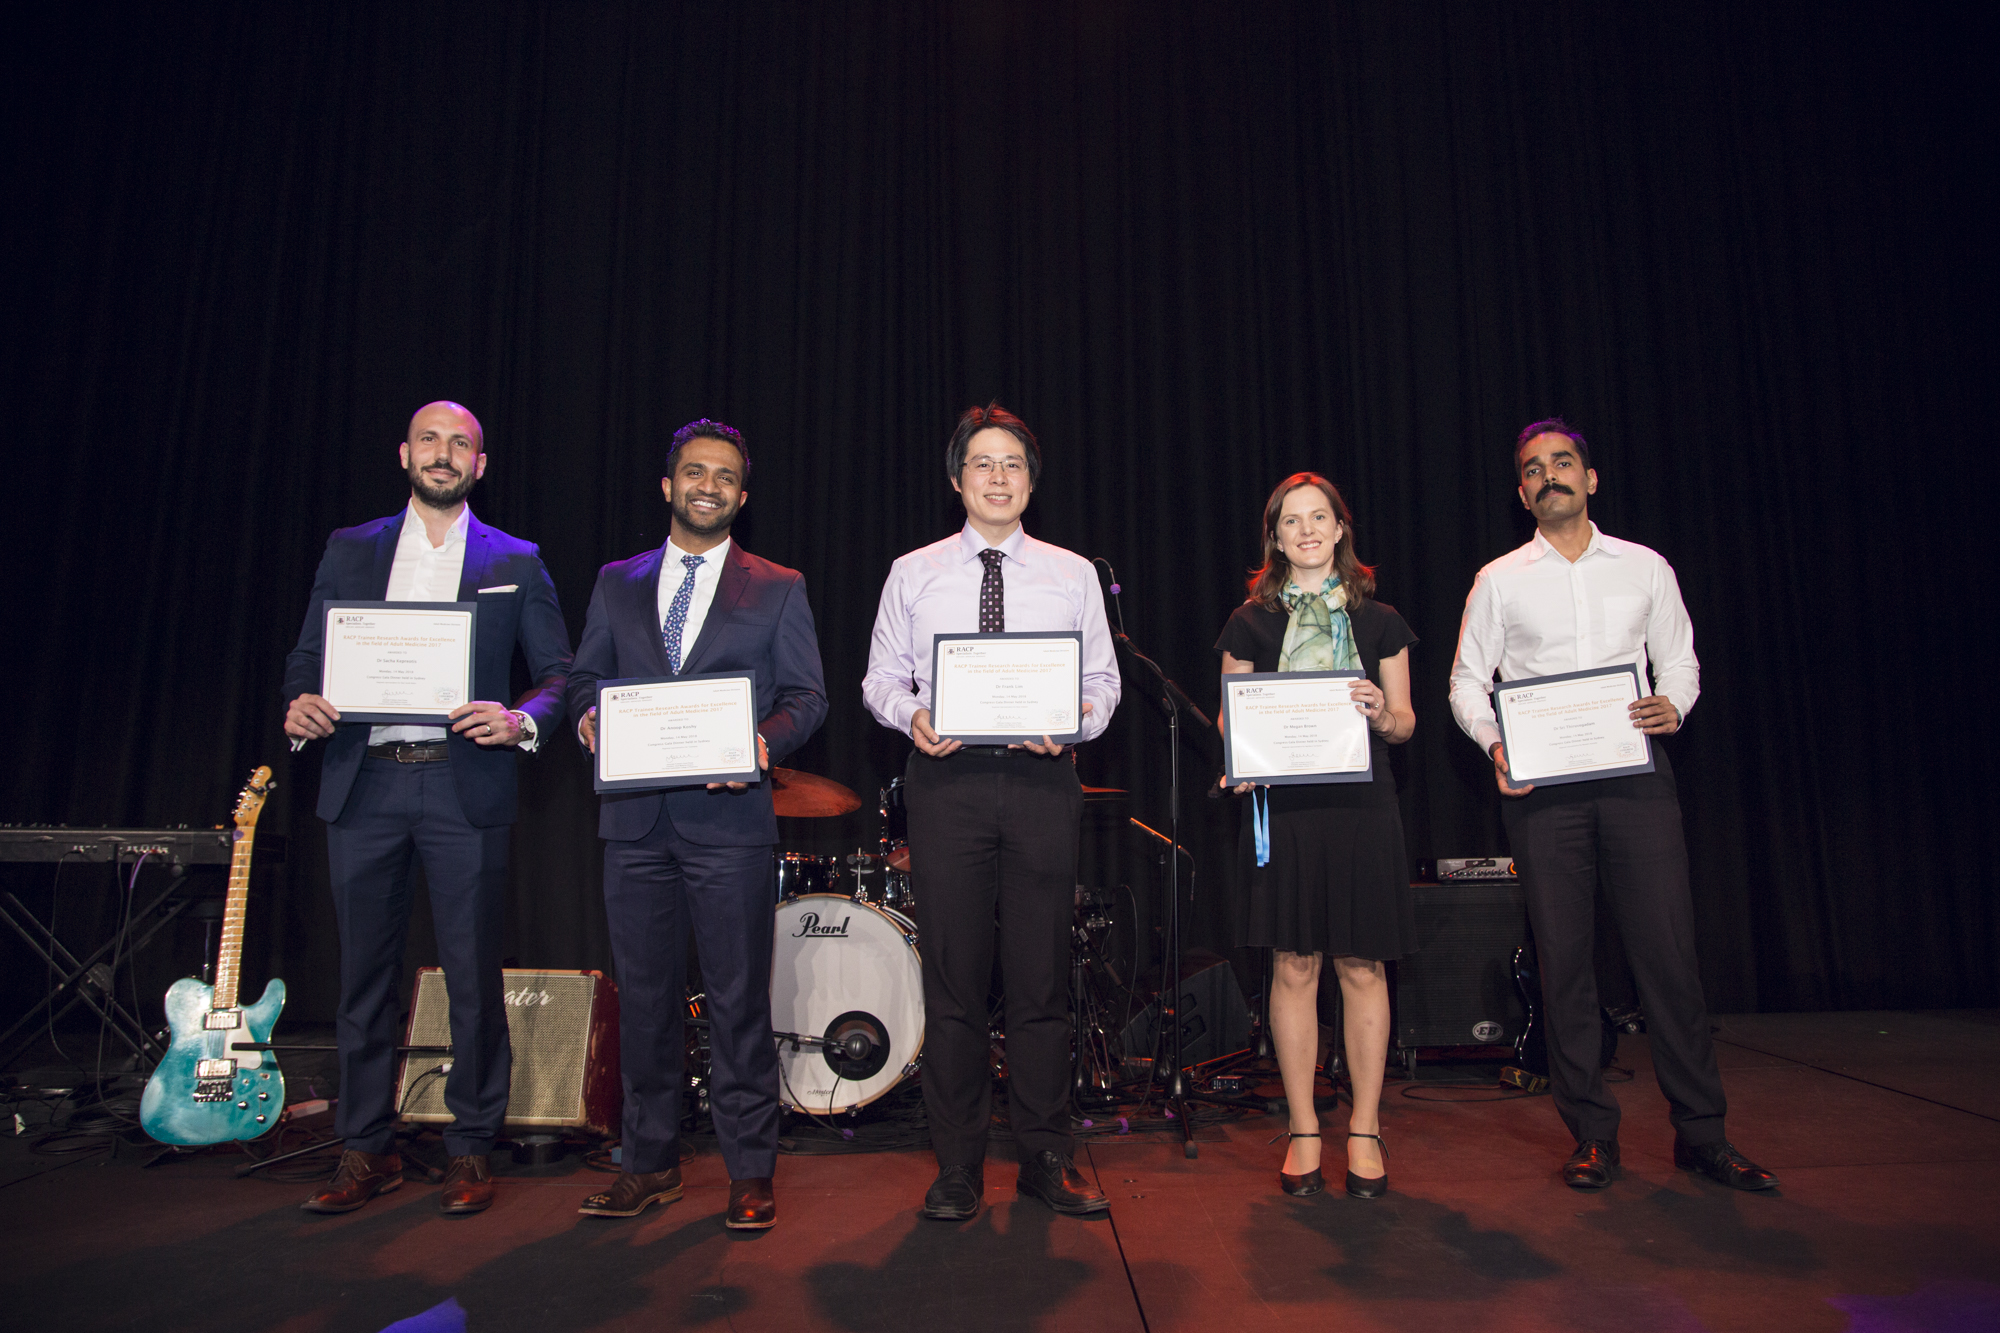 Five recipients on stage at RACP Congress